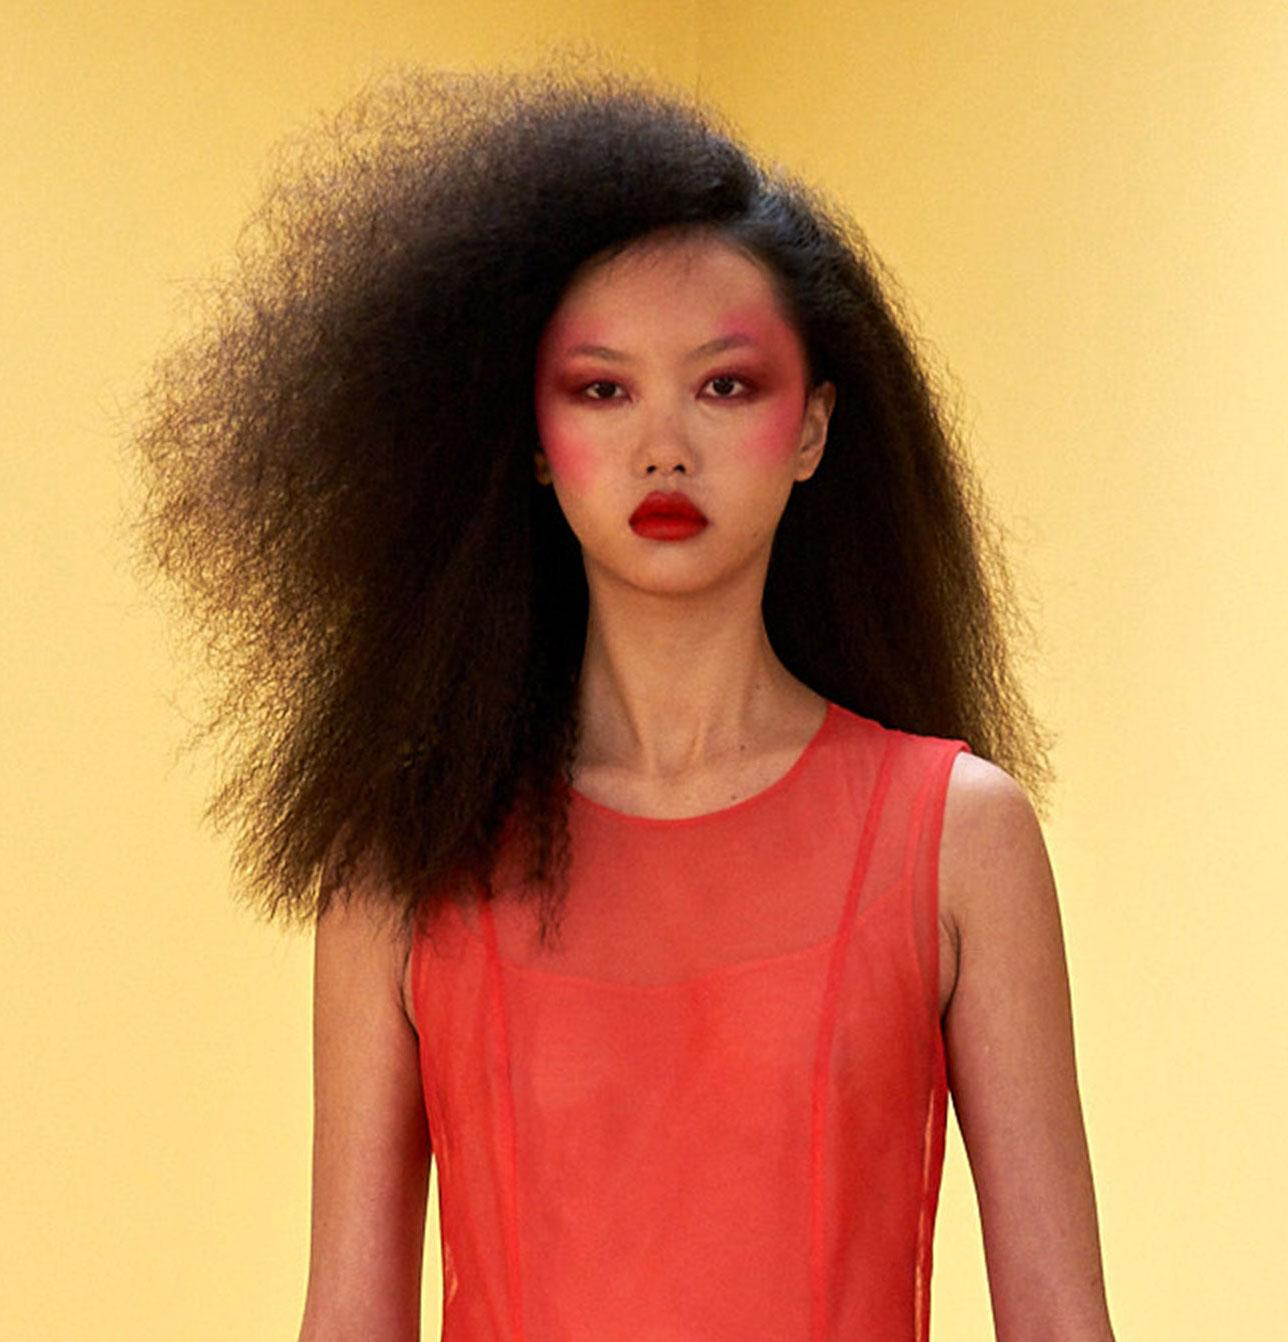 Molly Goddard A/W 2021 model with frizzy hair, red lipstick, and bright pink blush